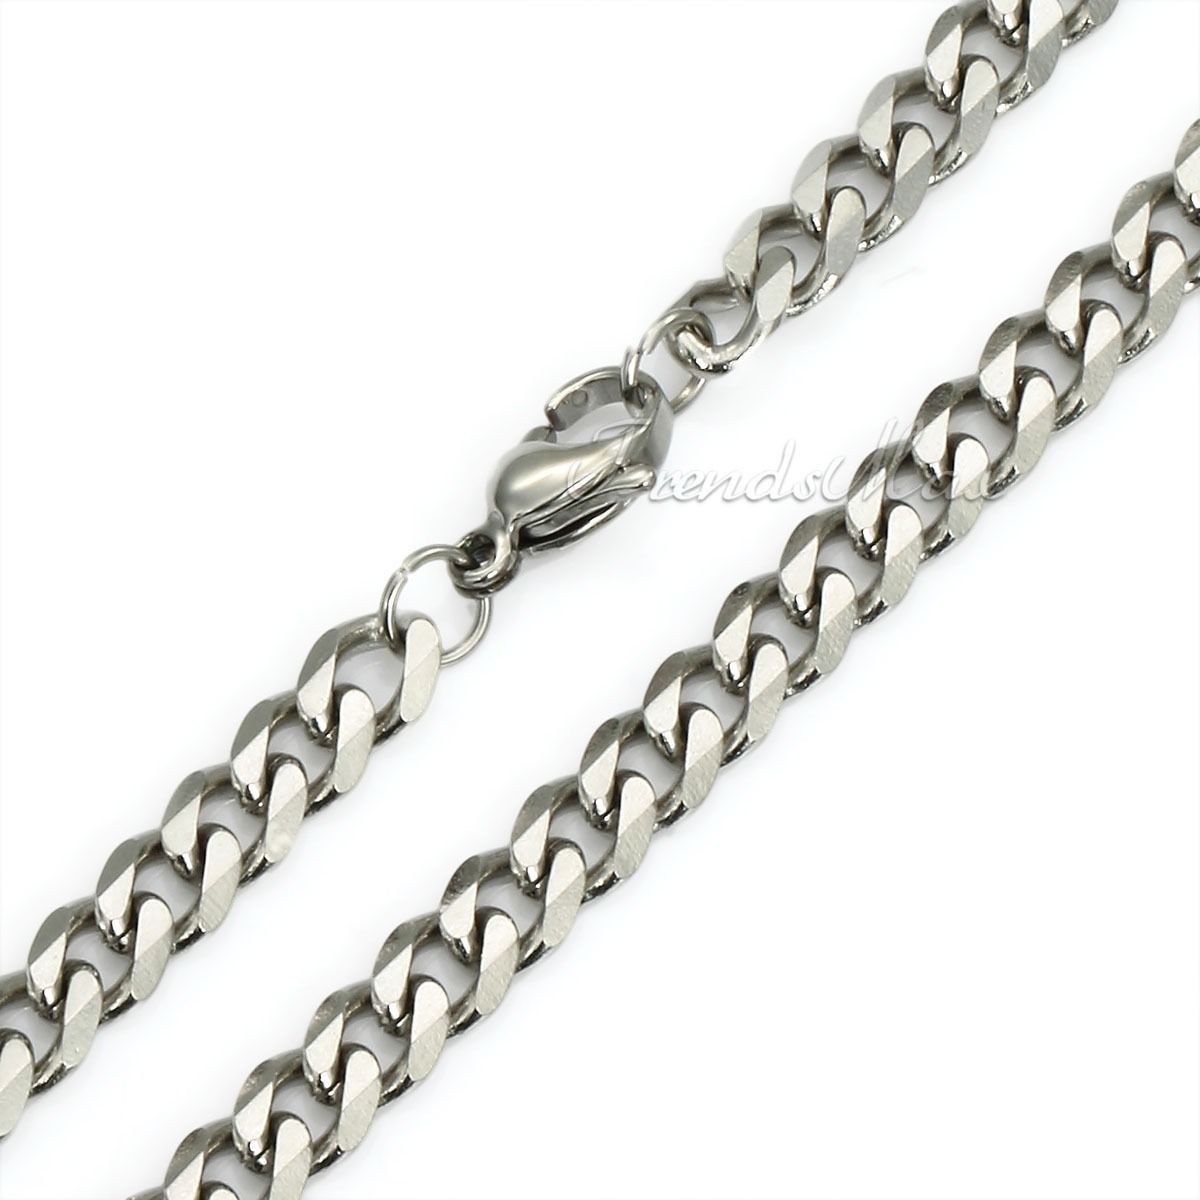 18 36 mens stainless steel silver chain necklace 3 5 7 9. Black Bedroom Furniture Sets. Home Design Ideas